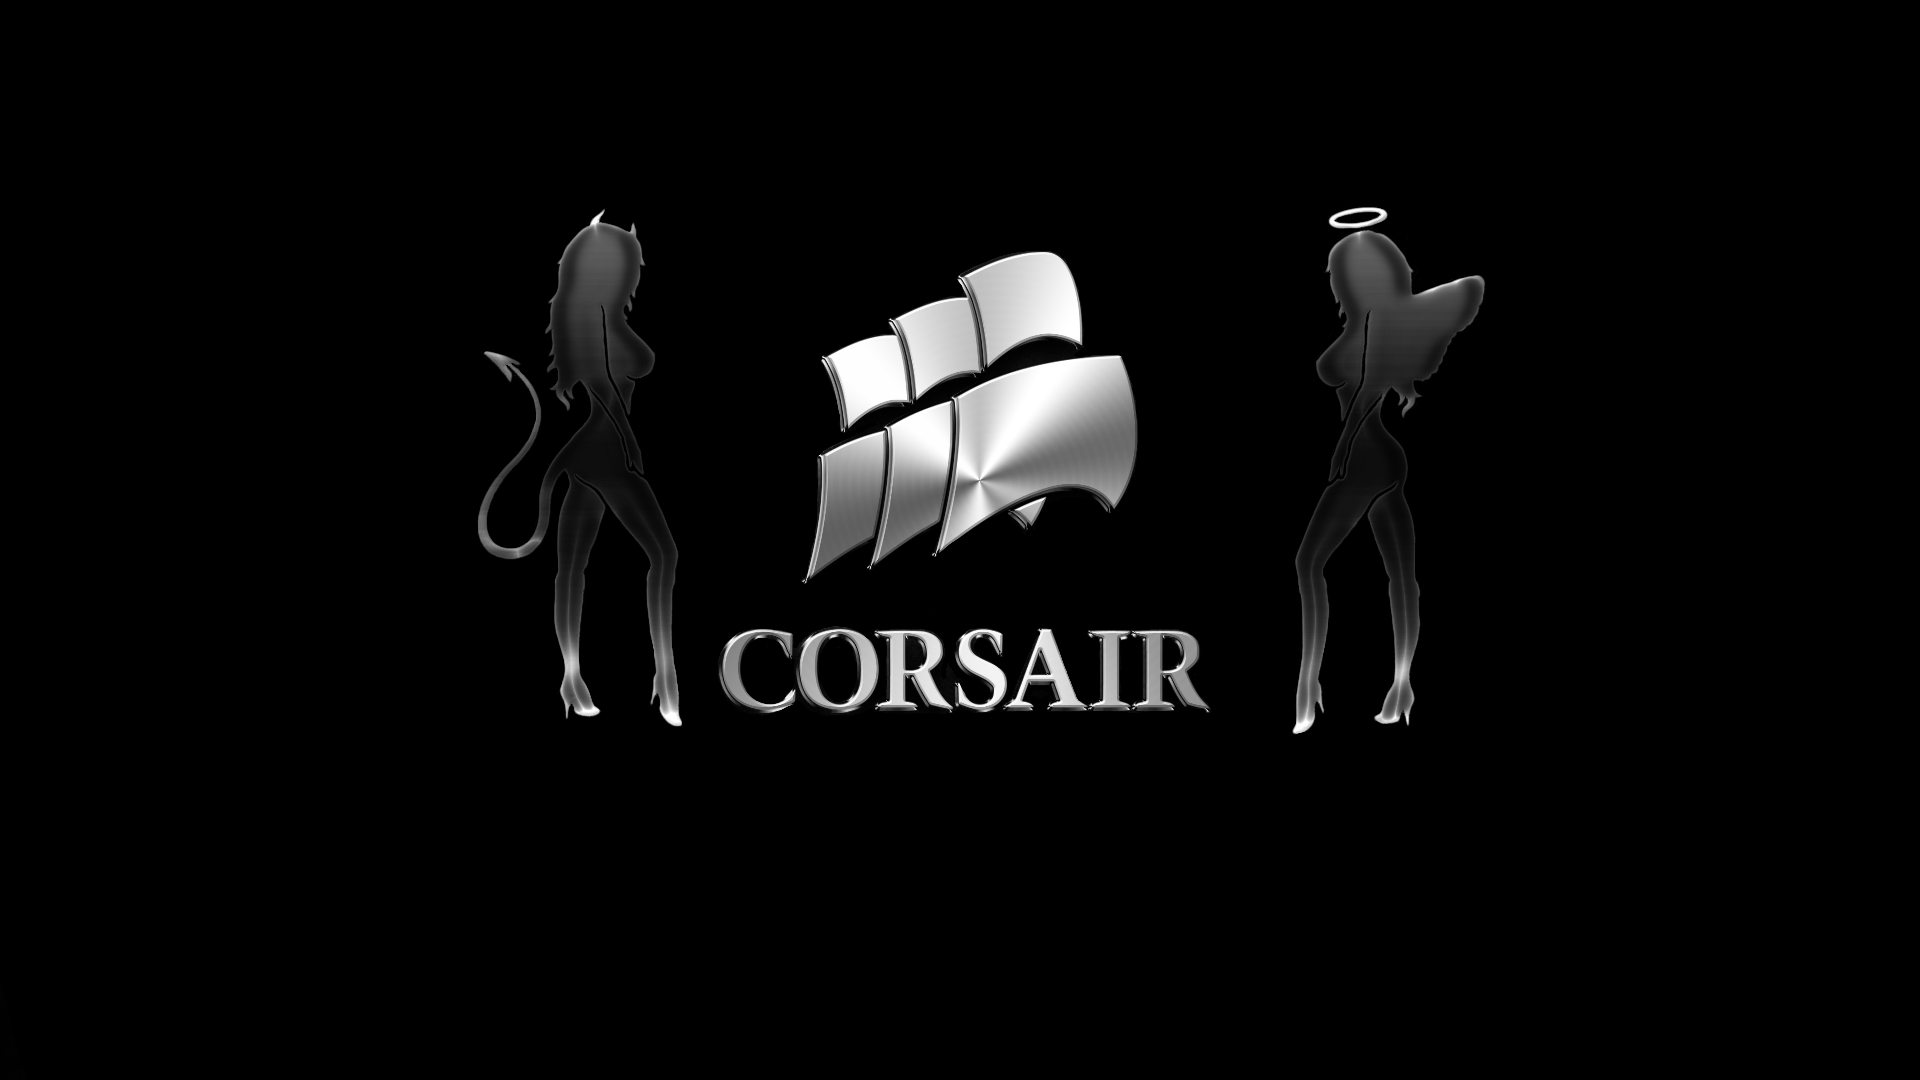 Corsair ltd